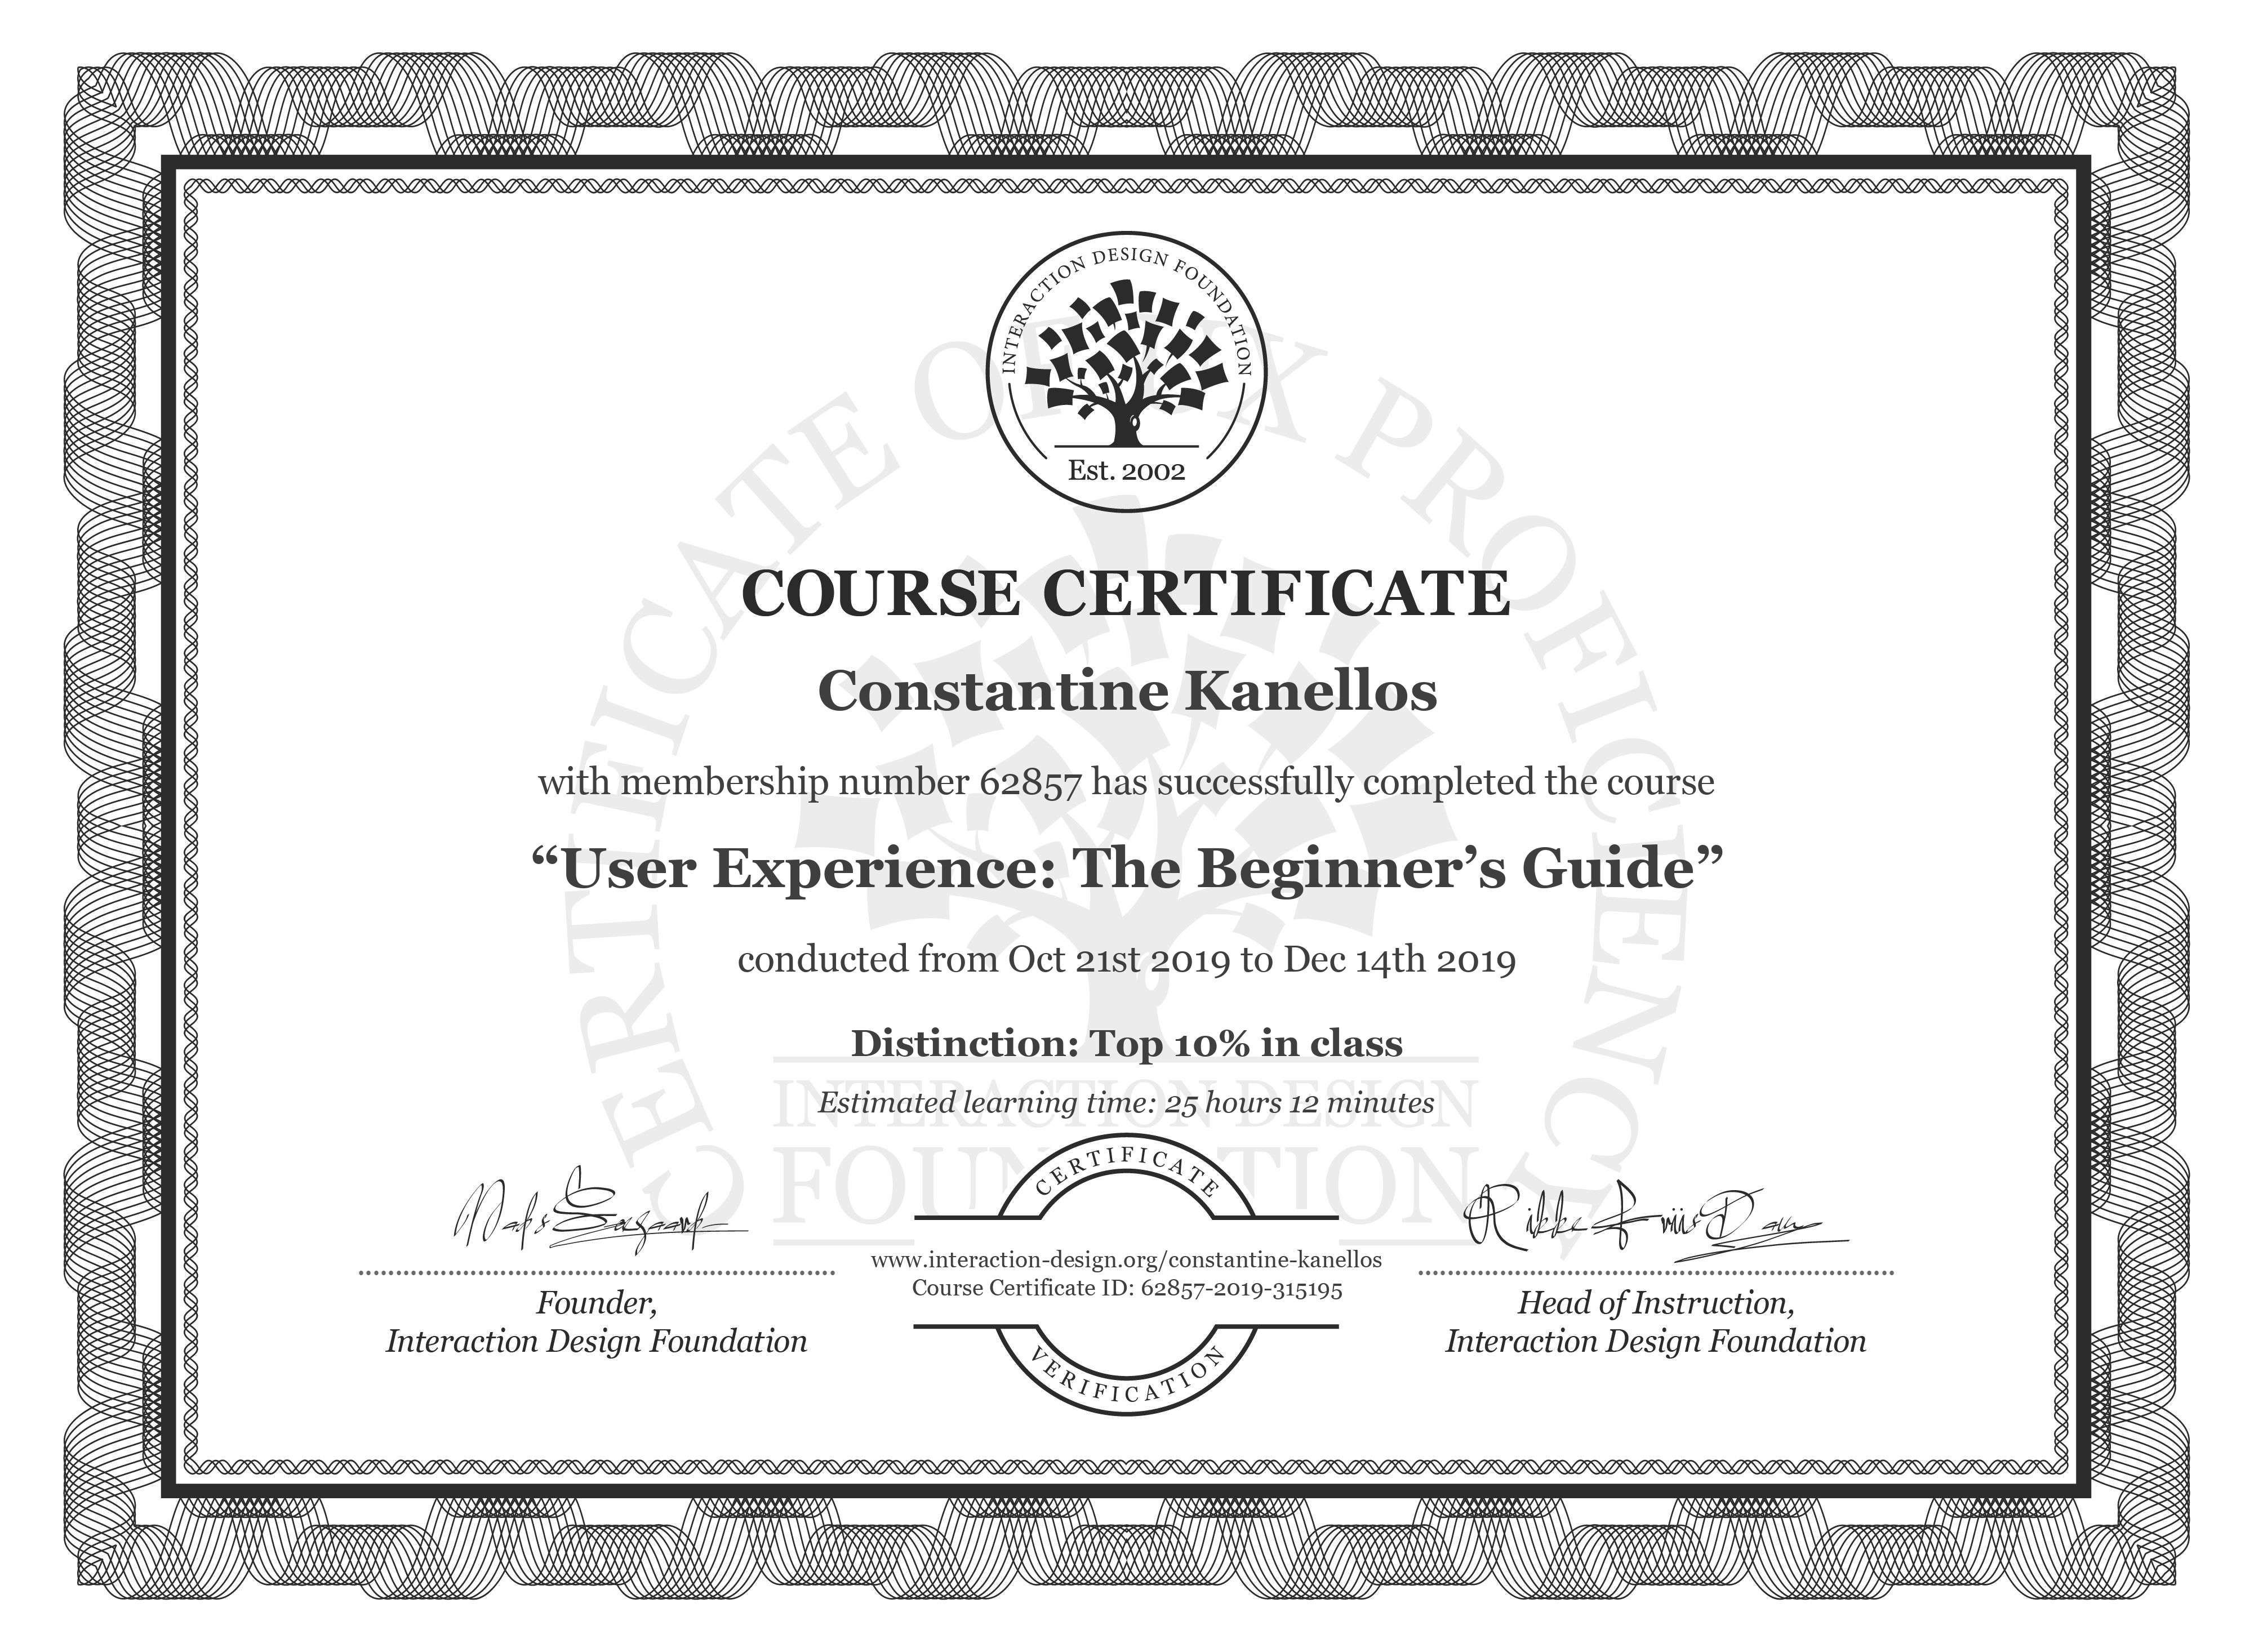 Constantine Kanellos's Course Certificate: Become a UX Designer from Scratch